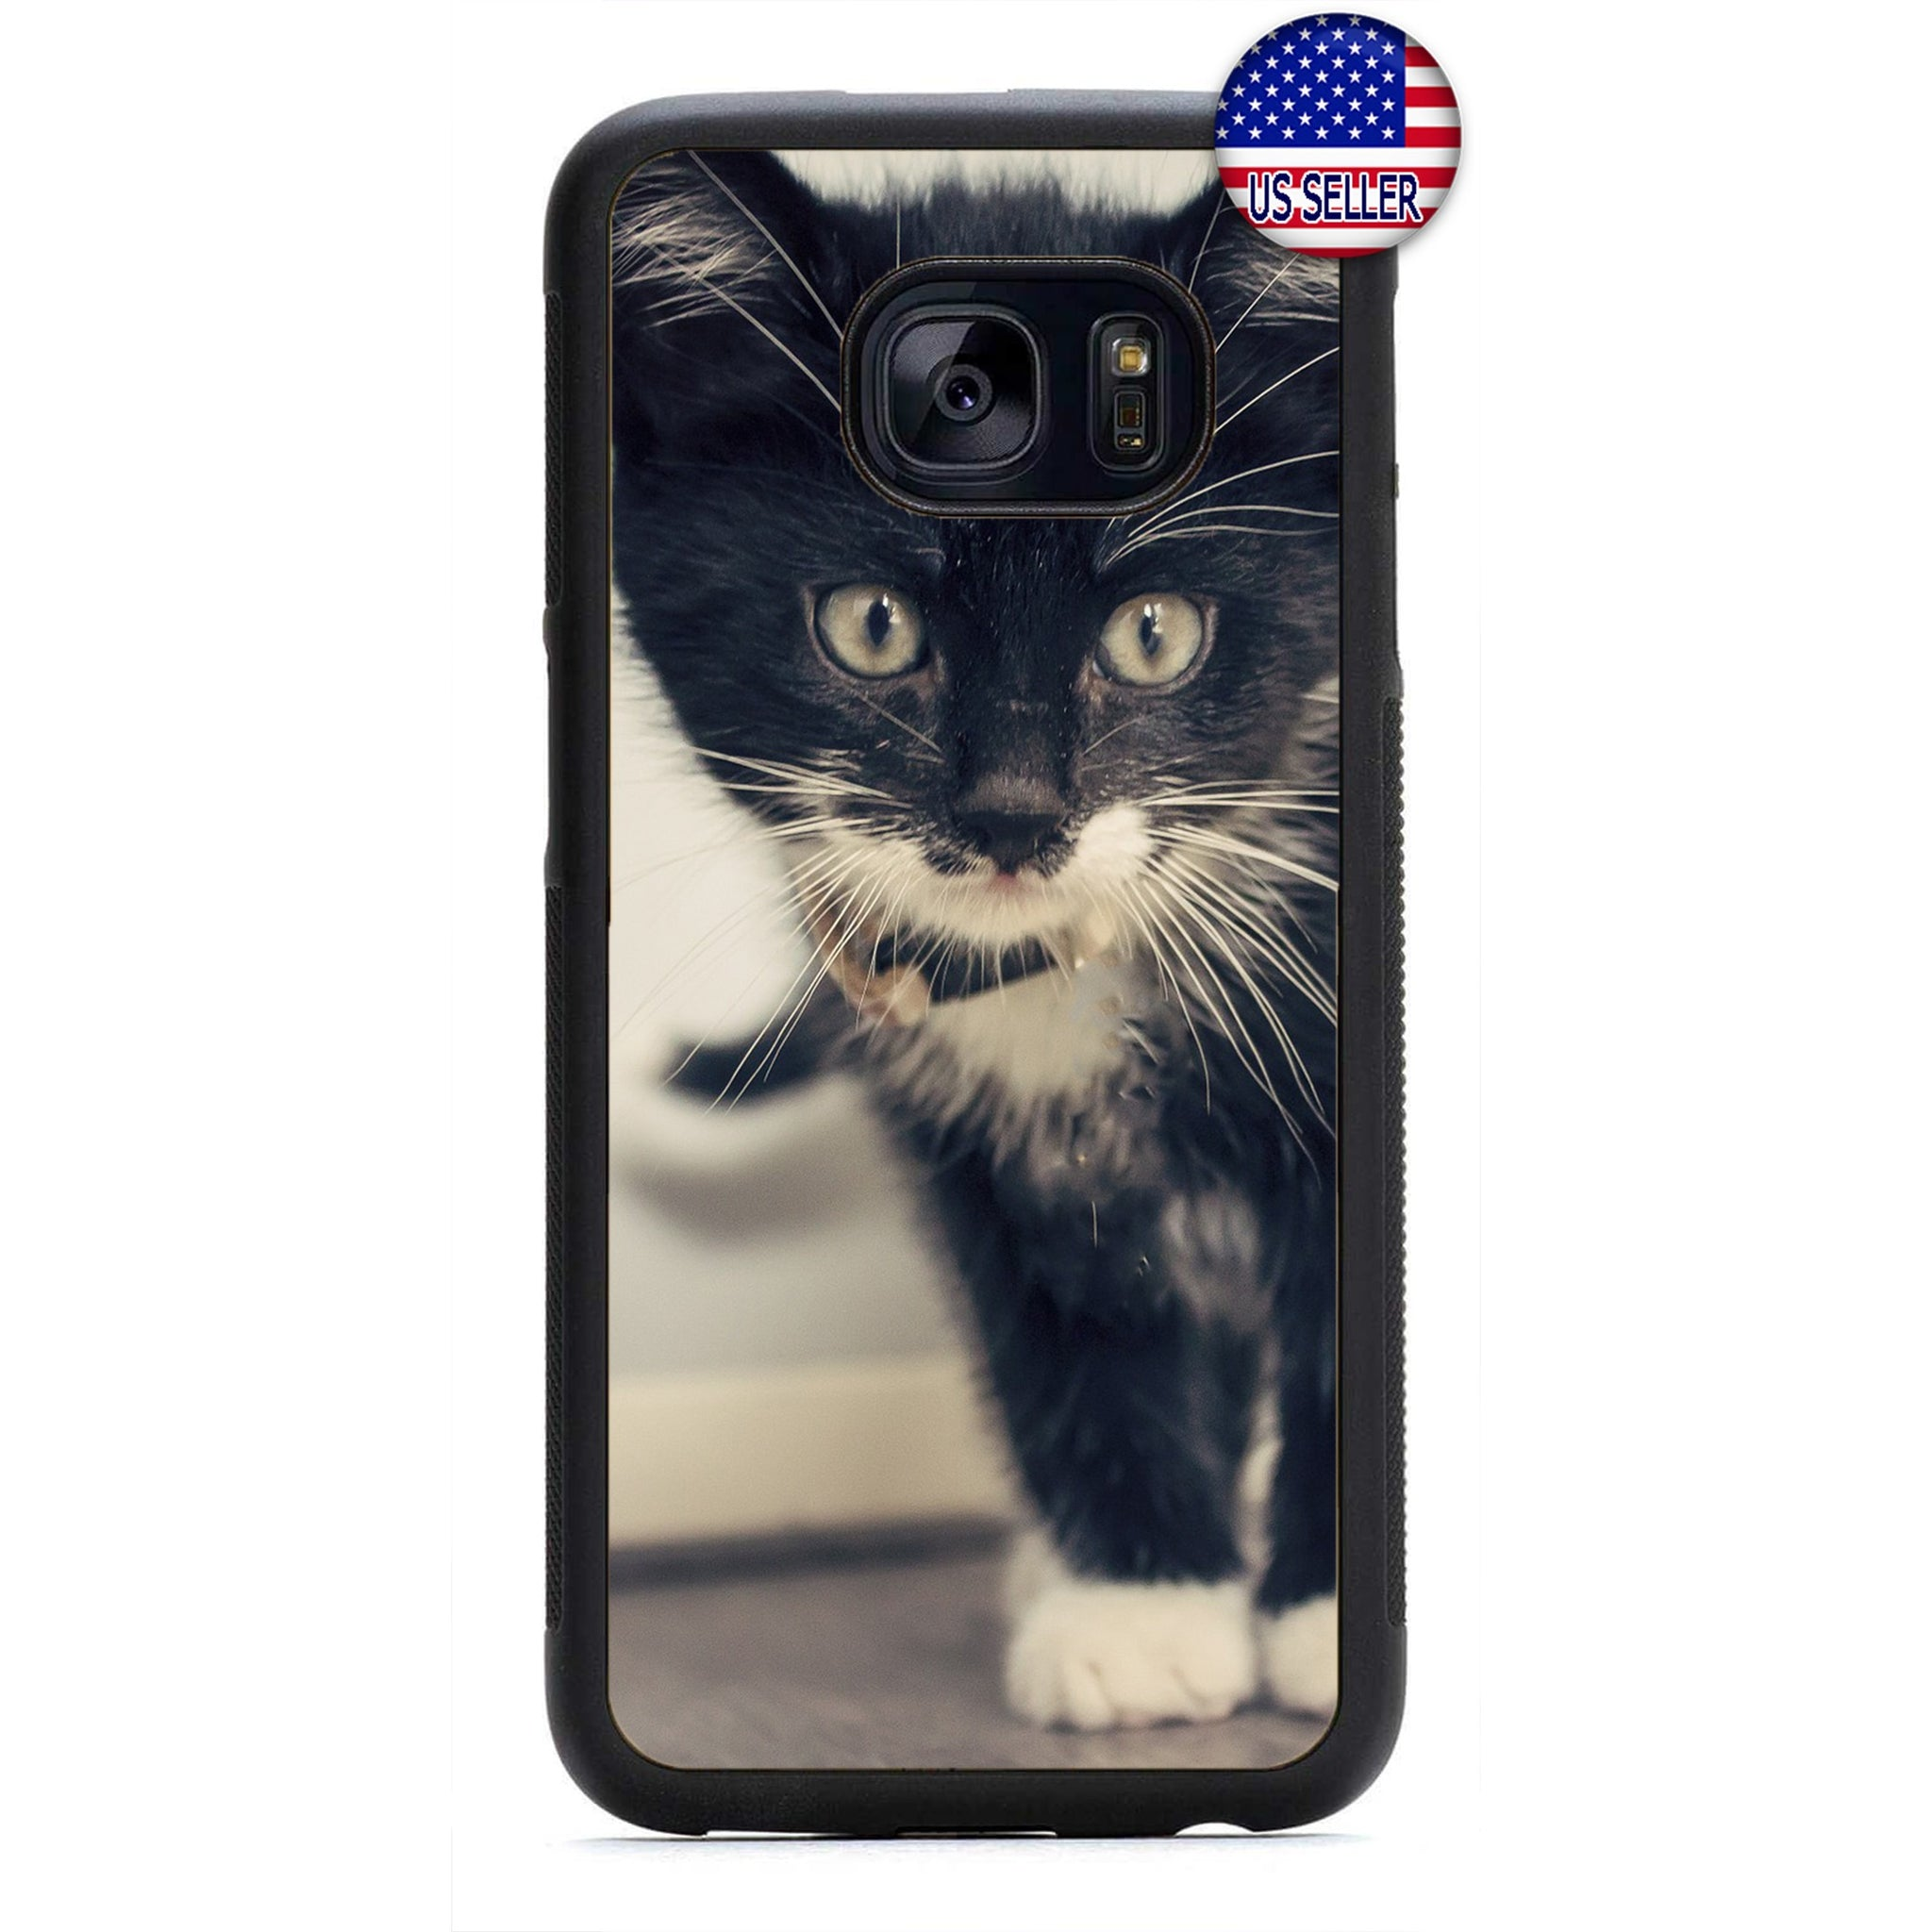 Kitty Cat Kitten Love Rubber Case Cover For Samsung Galaxy Note